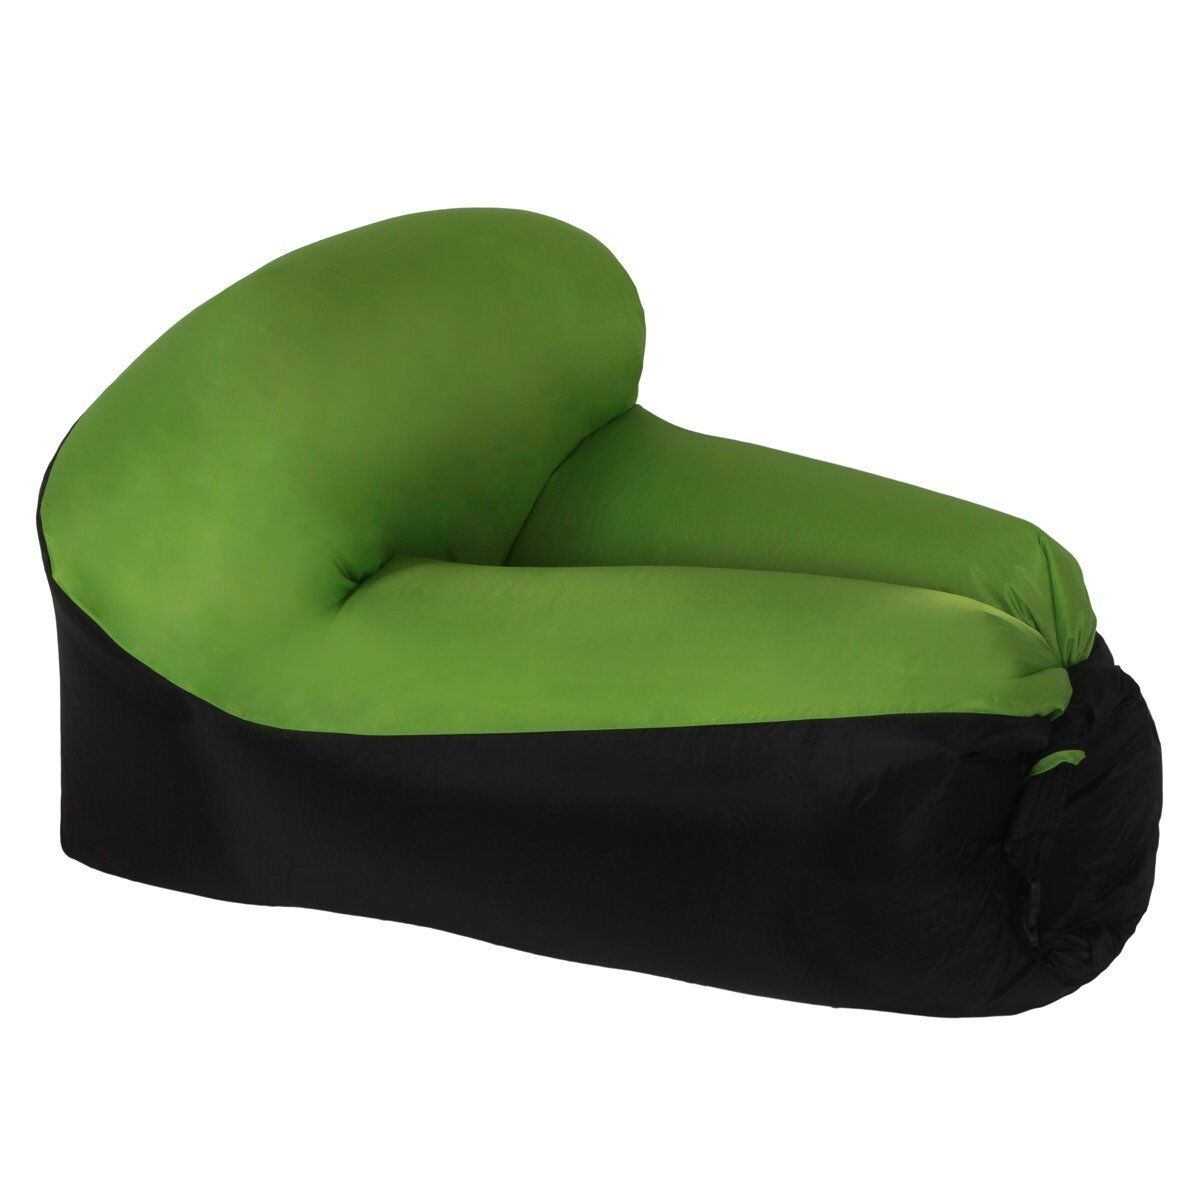 Henoo Outdoor Recreation Product BD005 Inflatable Lounger Ch